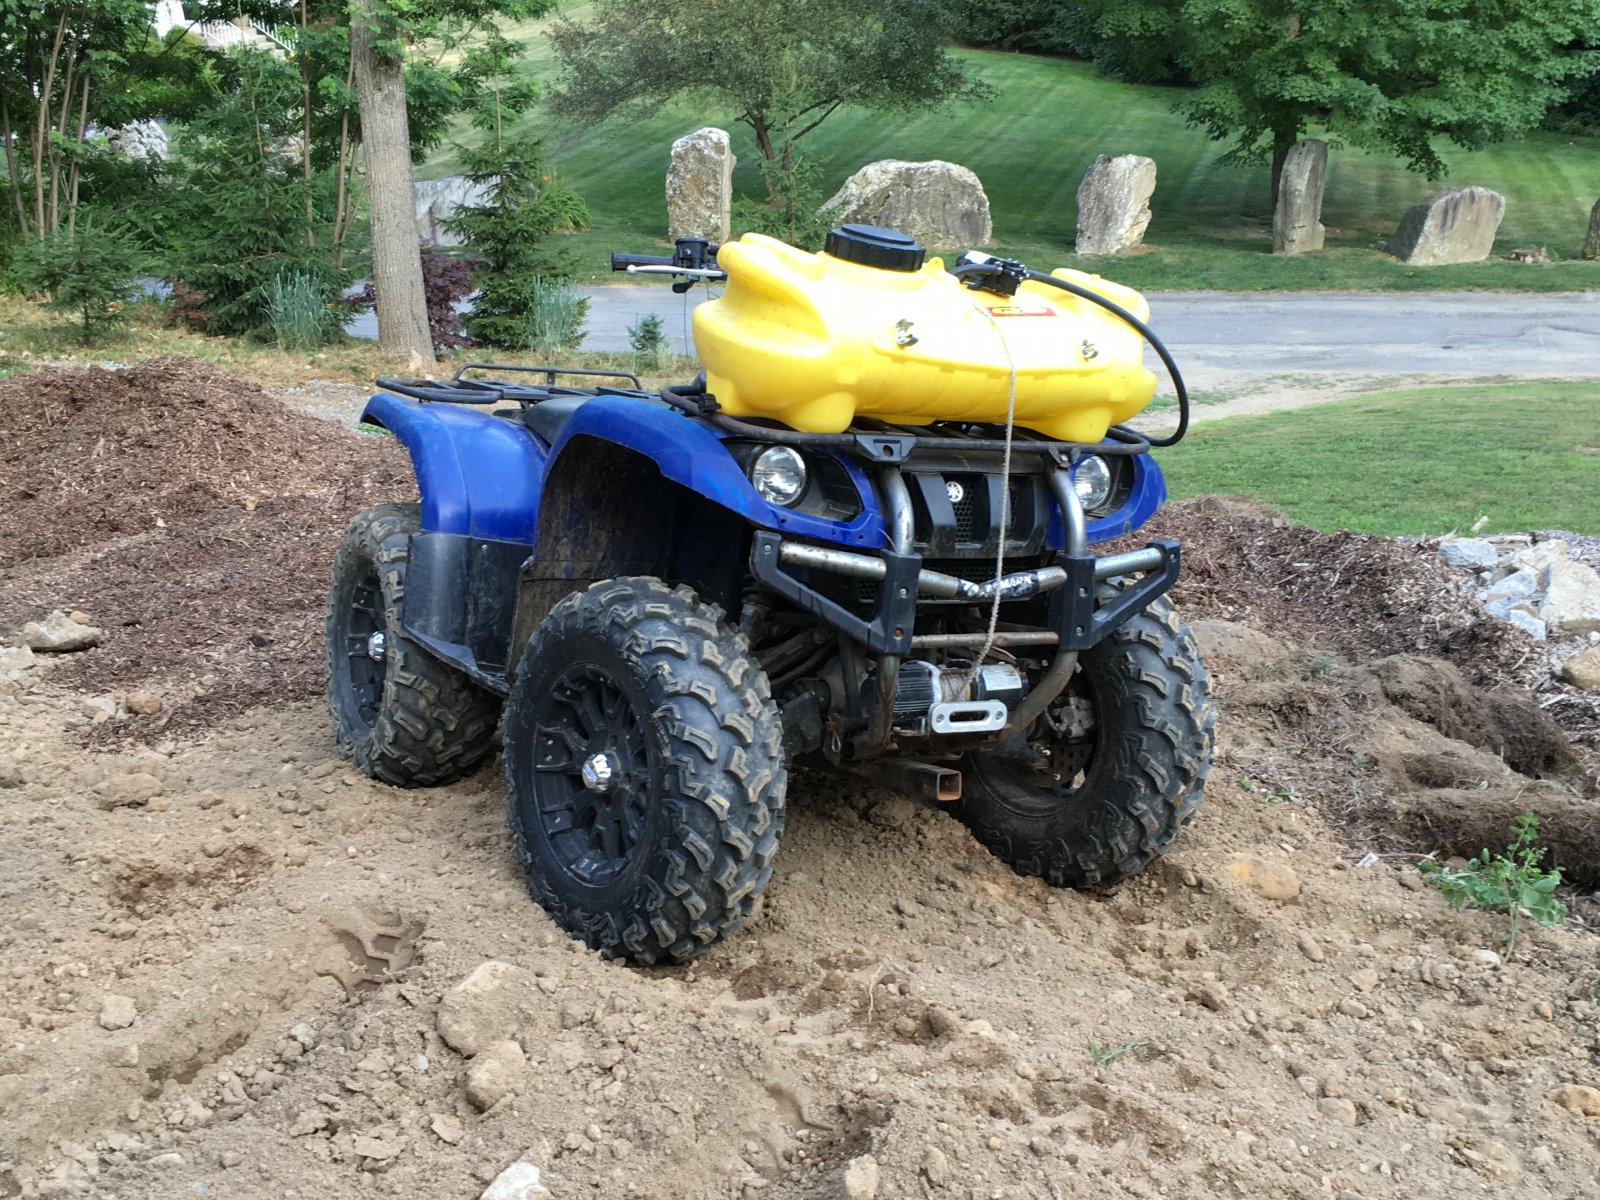 Yamaha Grizzly With Sprayer